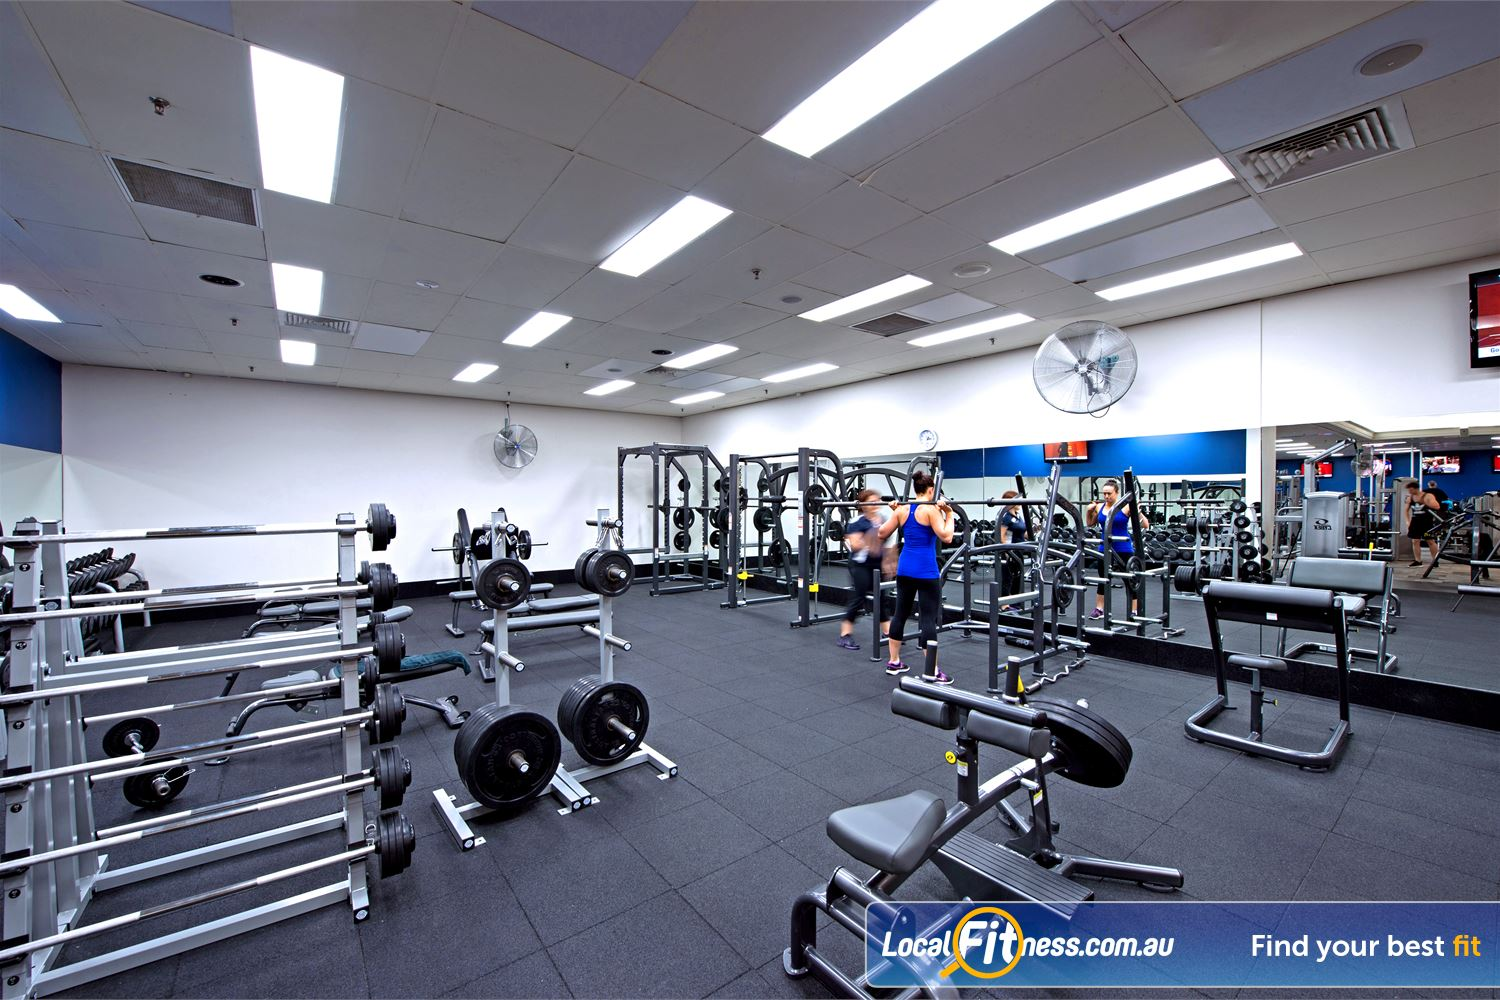 Goodlife Health Clubs Cottesloe The newly renovated Goodlife Cottesloe gym.